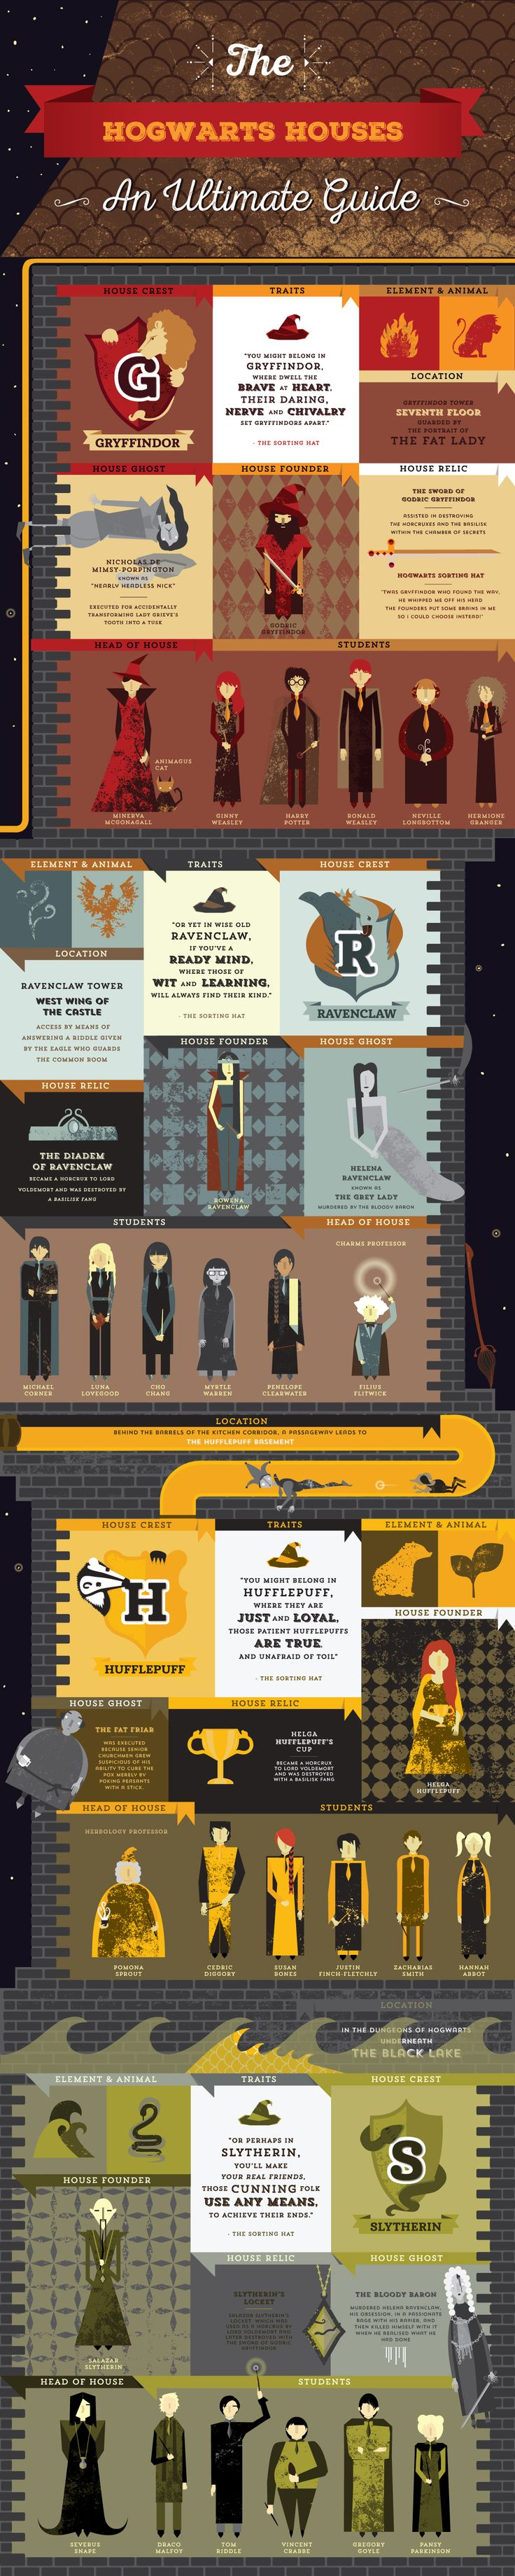 This was a student project to create an infographic from any element of the Harry Potter books.